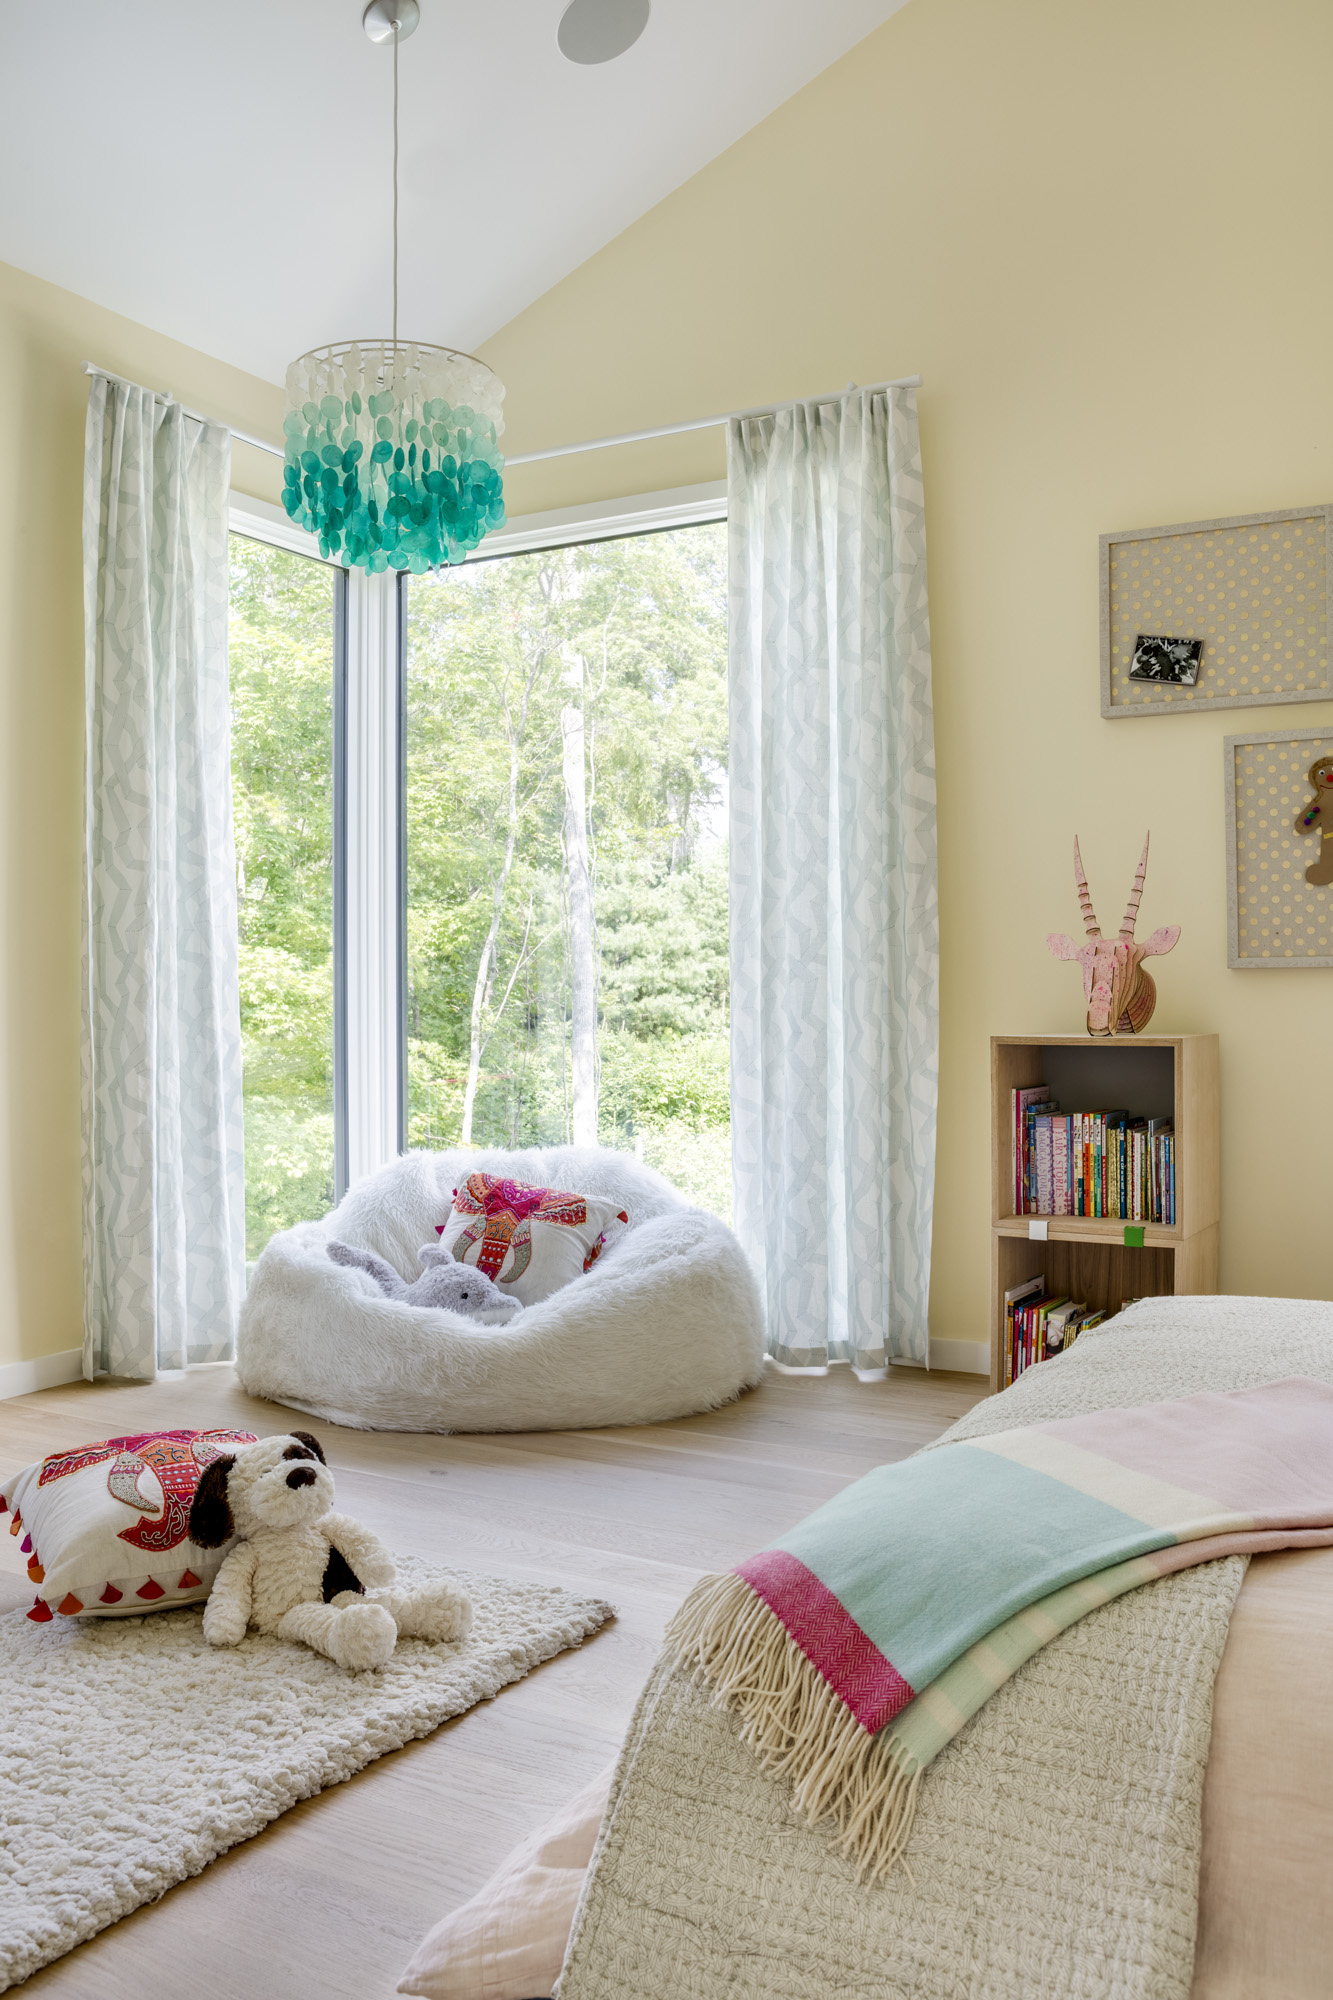 The turquoise and pink color palette flows seamlessly into the girl's bedroom. Curtains and shades from The Shade Store help control natural light, and the blue pendant light is from Pottery Barn.